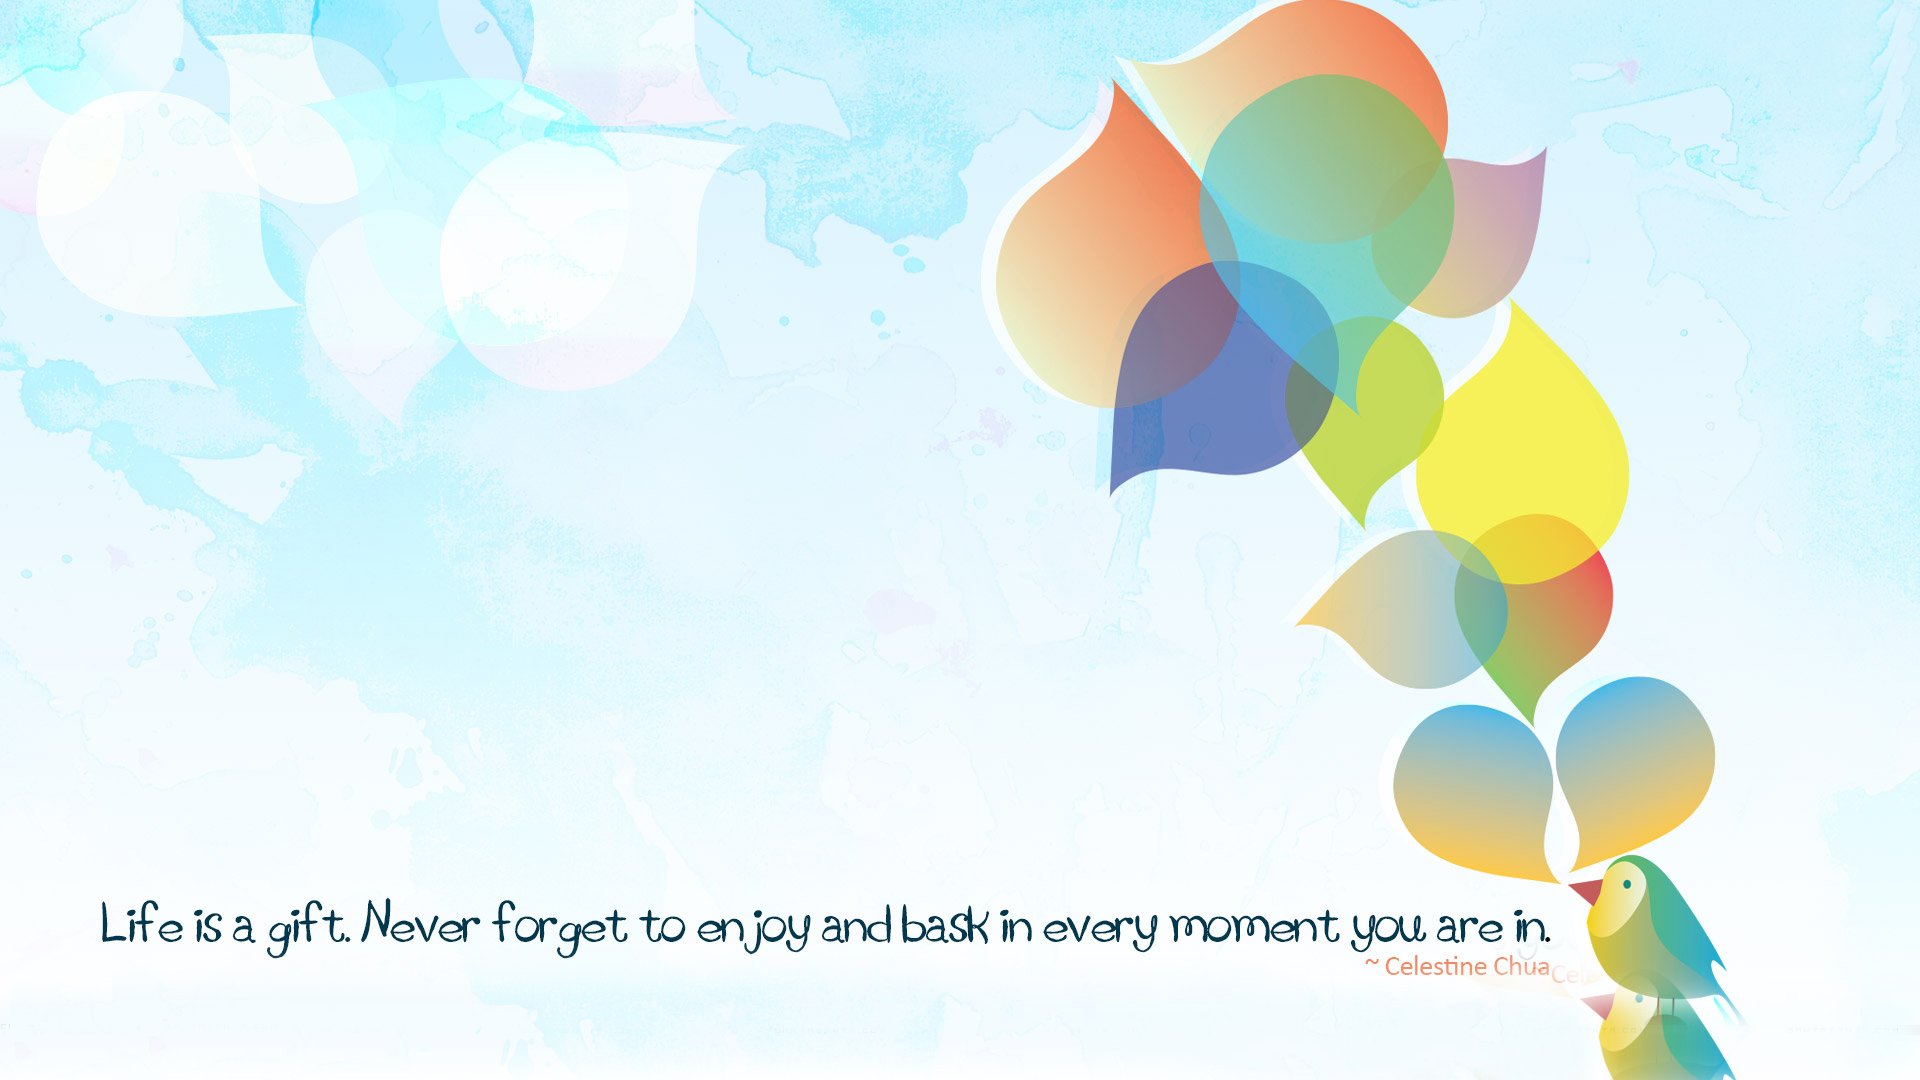 50 Motivational Wallpapers To Fire You Up For Big Things